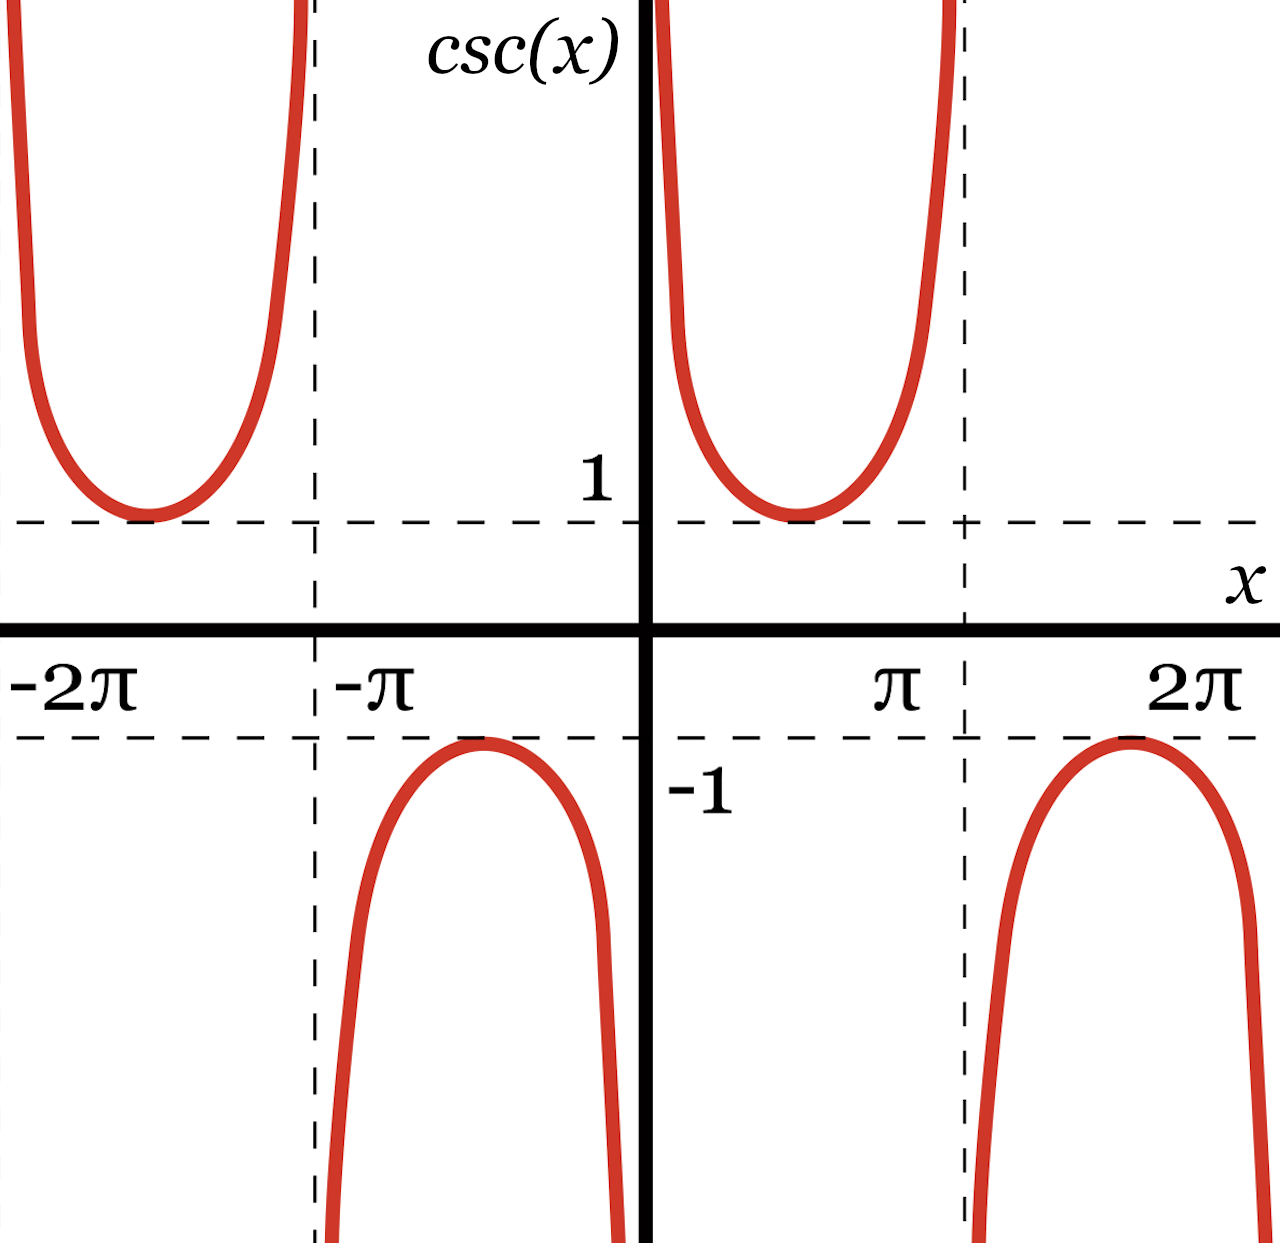 graph of the repeating curves representing possible cosecant values